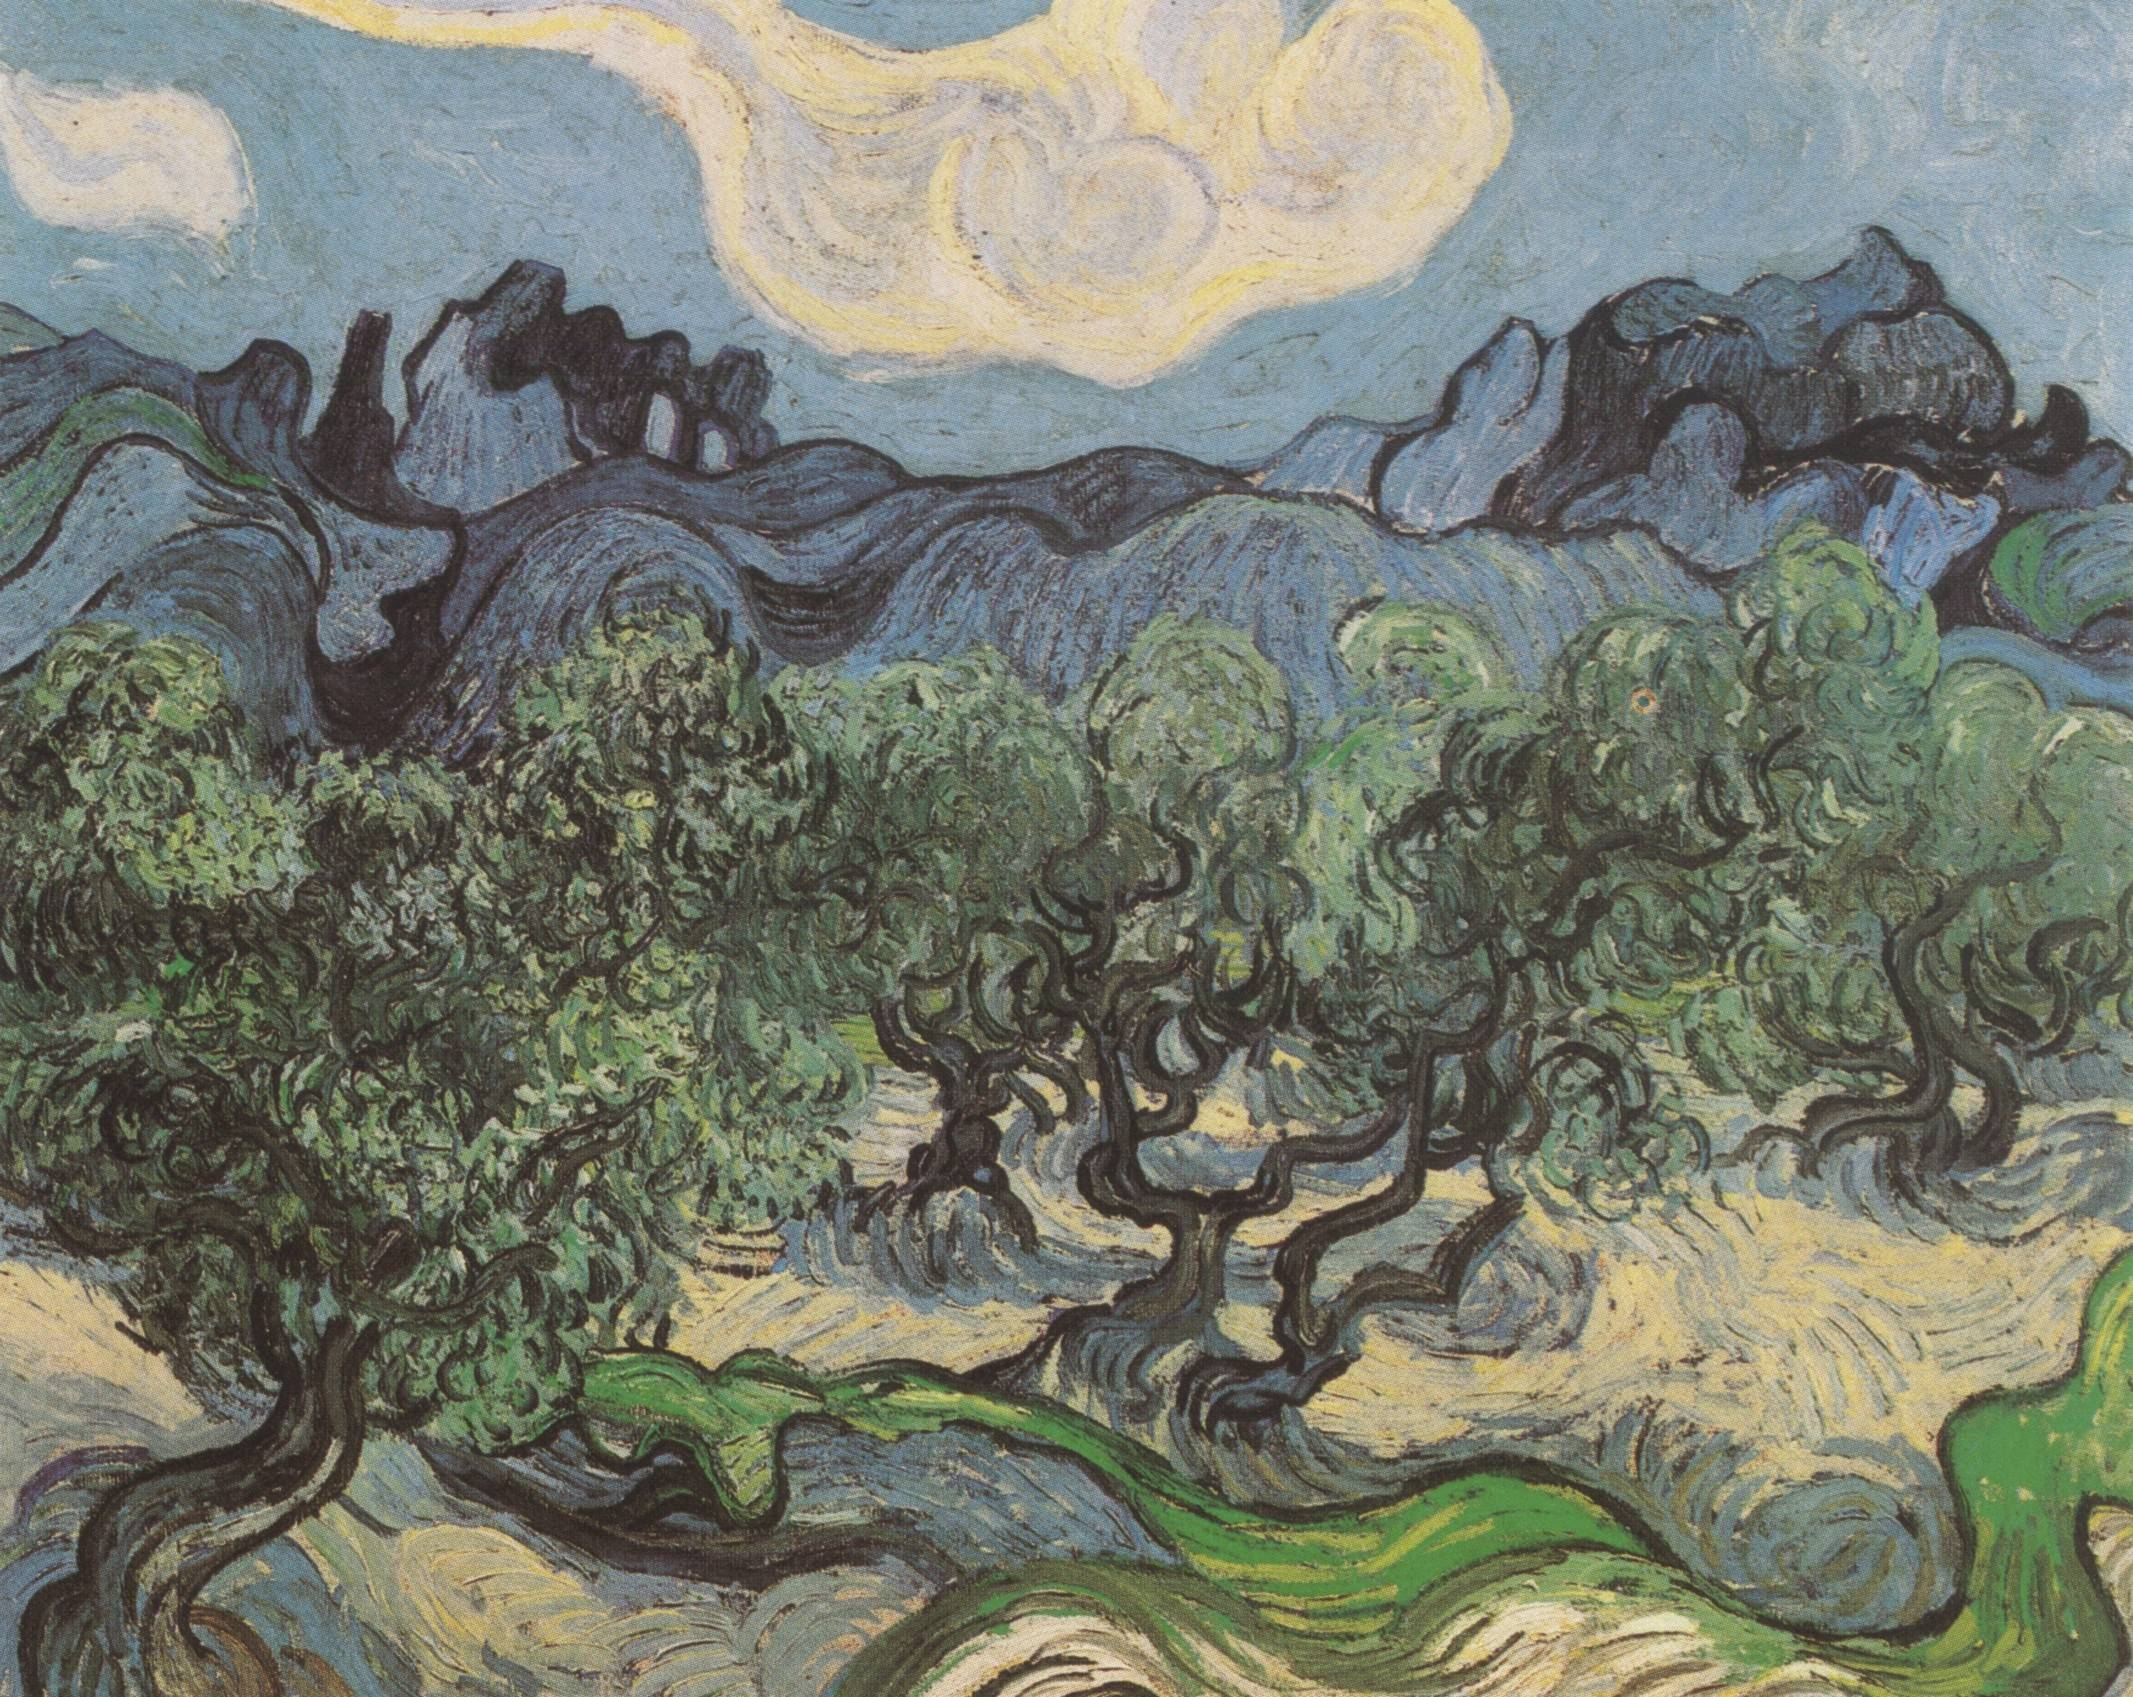 Van Gogh 1889 Olives with Les Alpilles in the Background, Saint-Remy coll priv